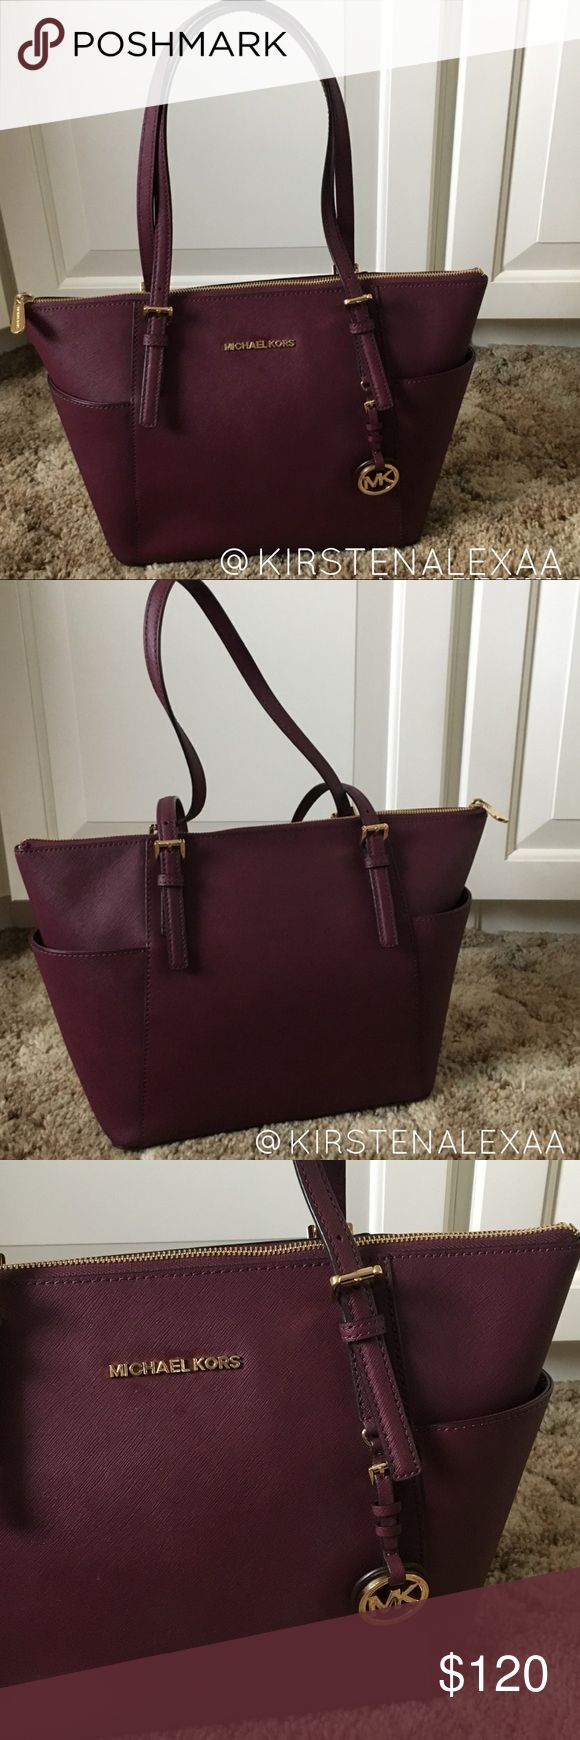 "Michael Kors Purple Tote Bag This bag is in excellent used condition! it is a purple brownish color. Side pockets, inside pockets, zipper compartment, and keychain clasp. Slight wear on bottom studs shown in fourth picture. Dimensions: 15"" x 10"" Michael Kors Bags Totes"